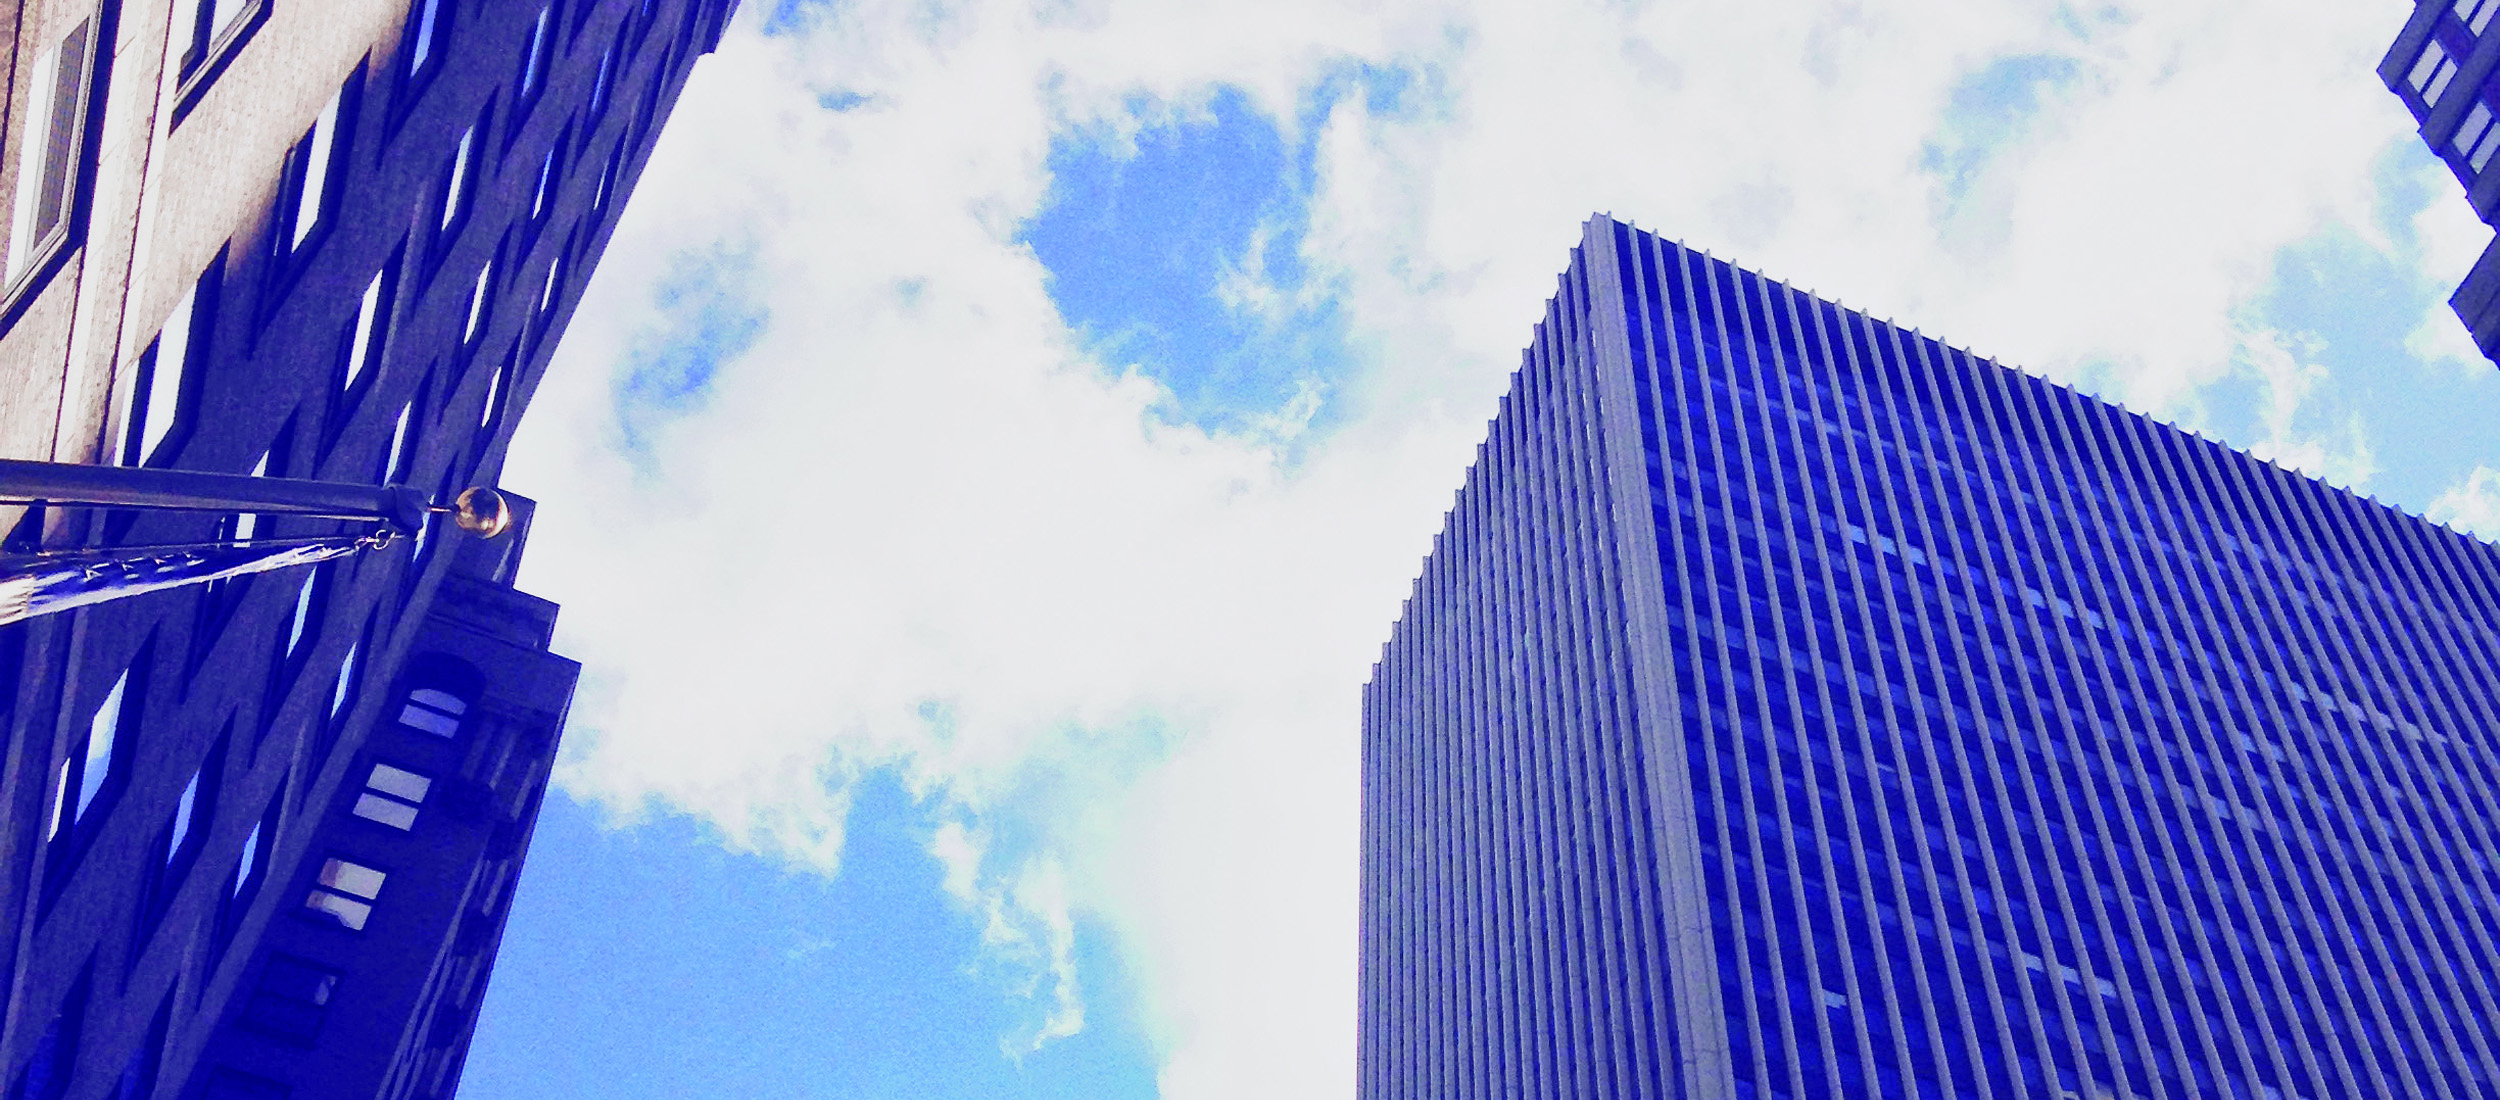 NY_Photo_02_Header